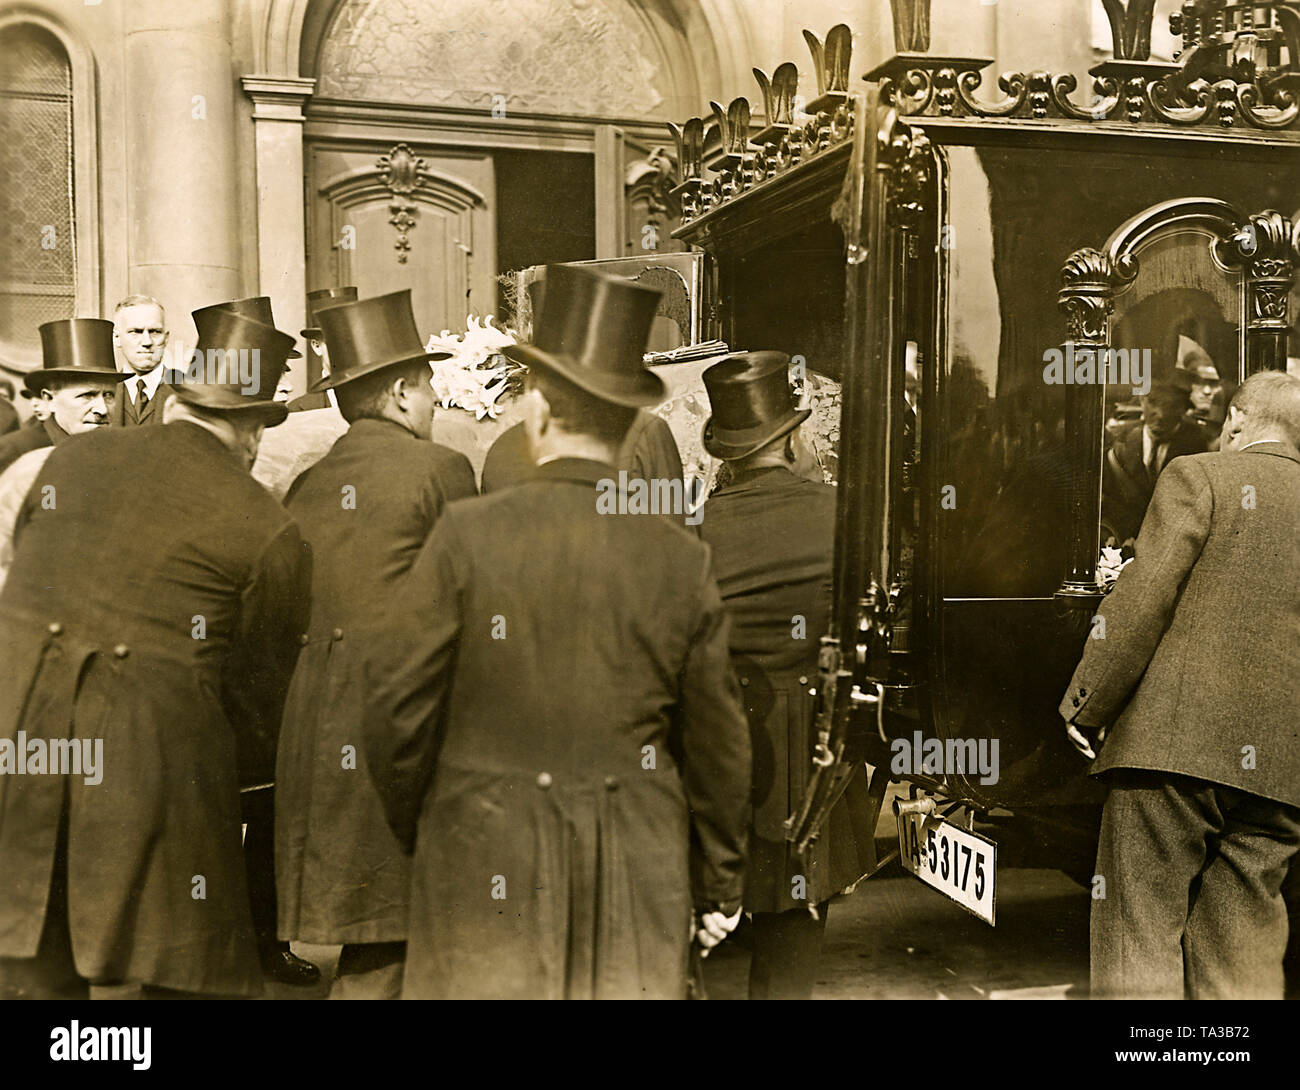 After a mourning ceremony in the Trinity Church in Berlin, the coffin of Count von Brockdorff-Rantzau is lifted into a car. The funeral took place on the family estate of the Brockdorffs near Schleswig. - Stock Image